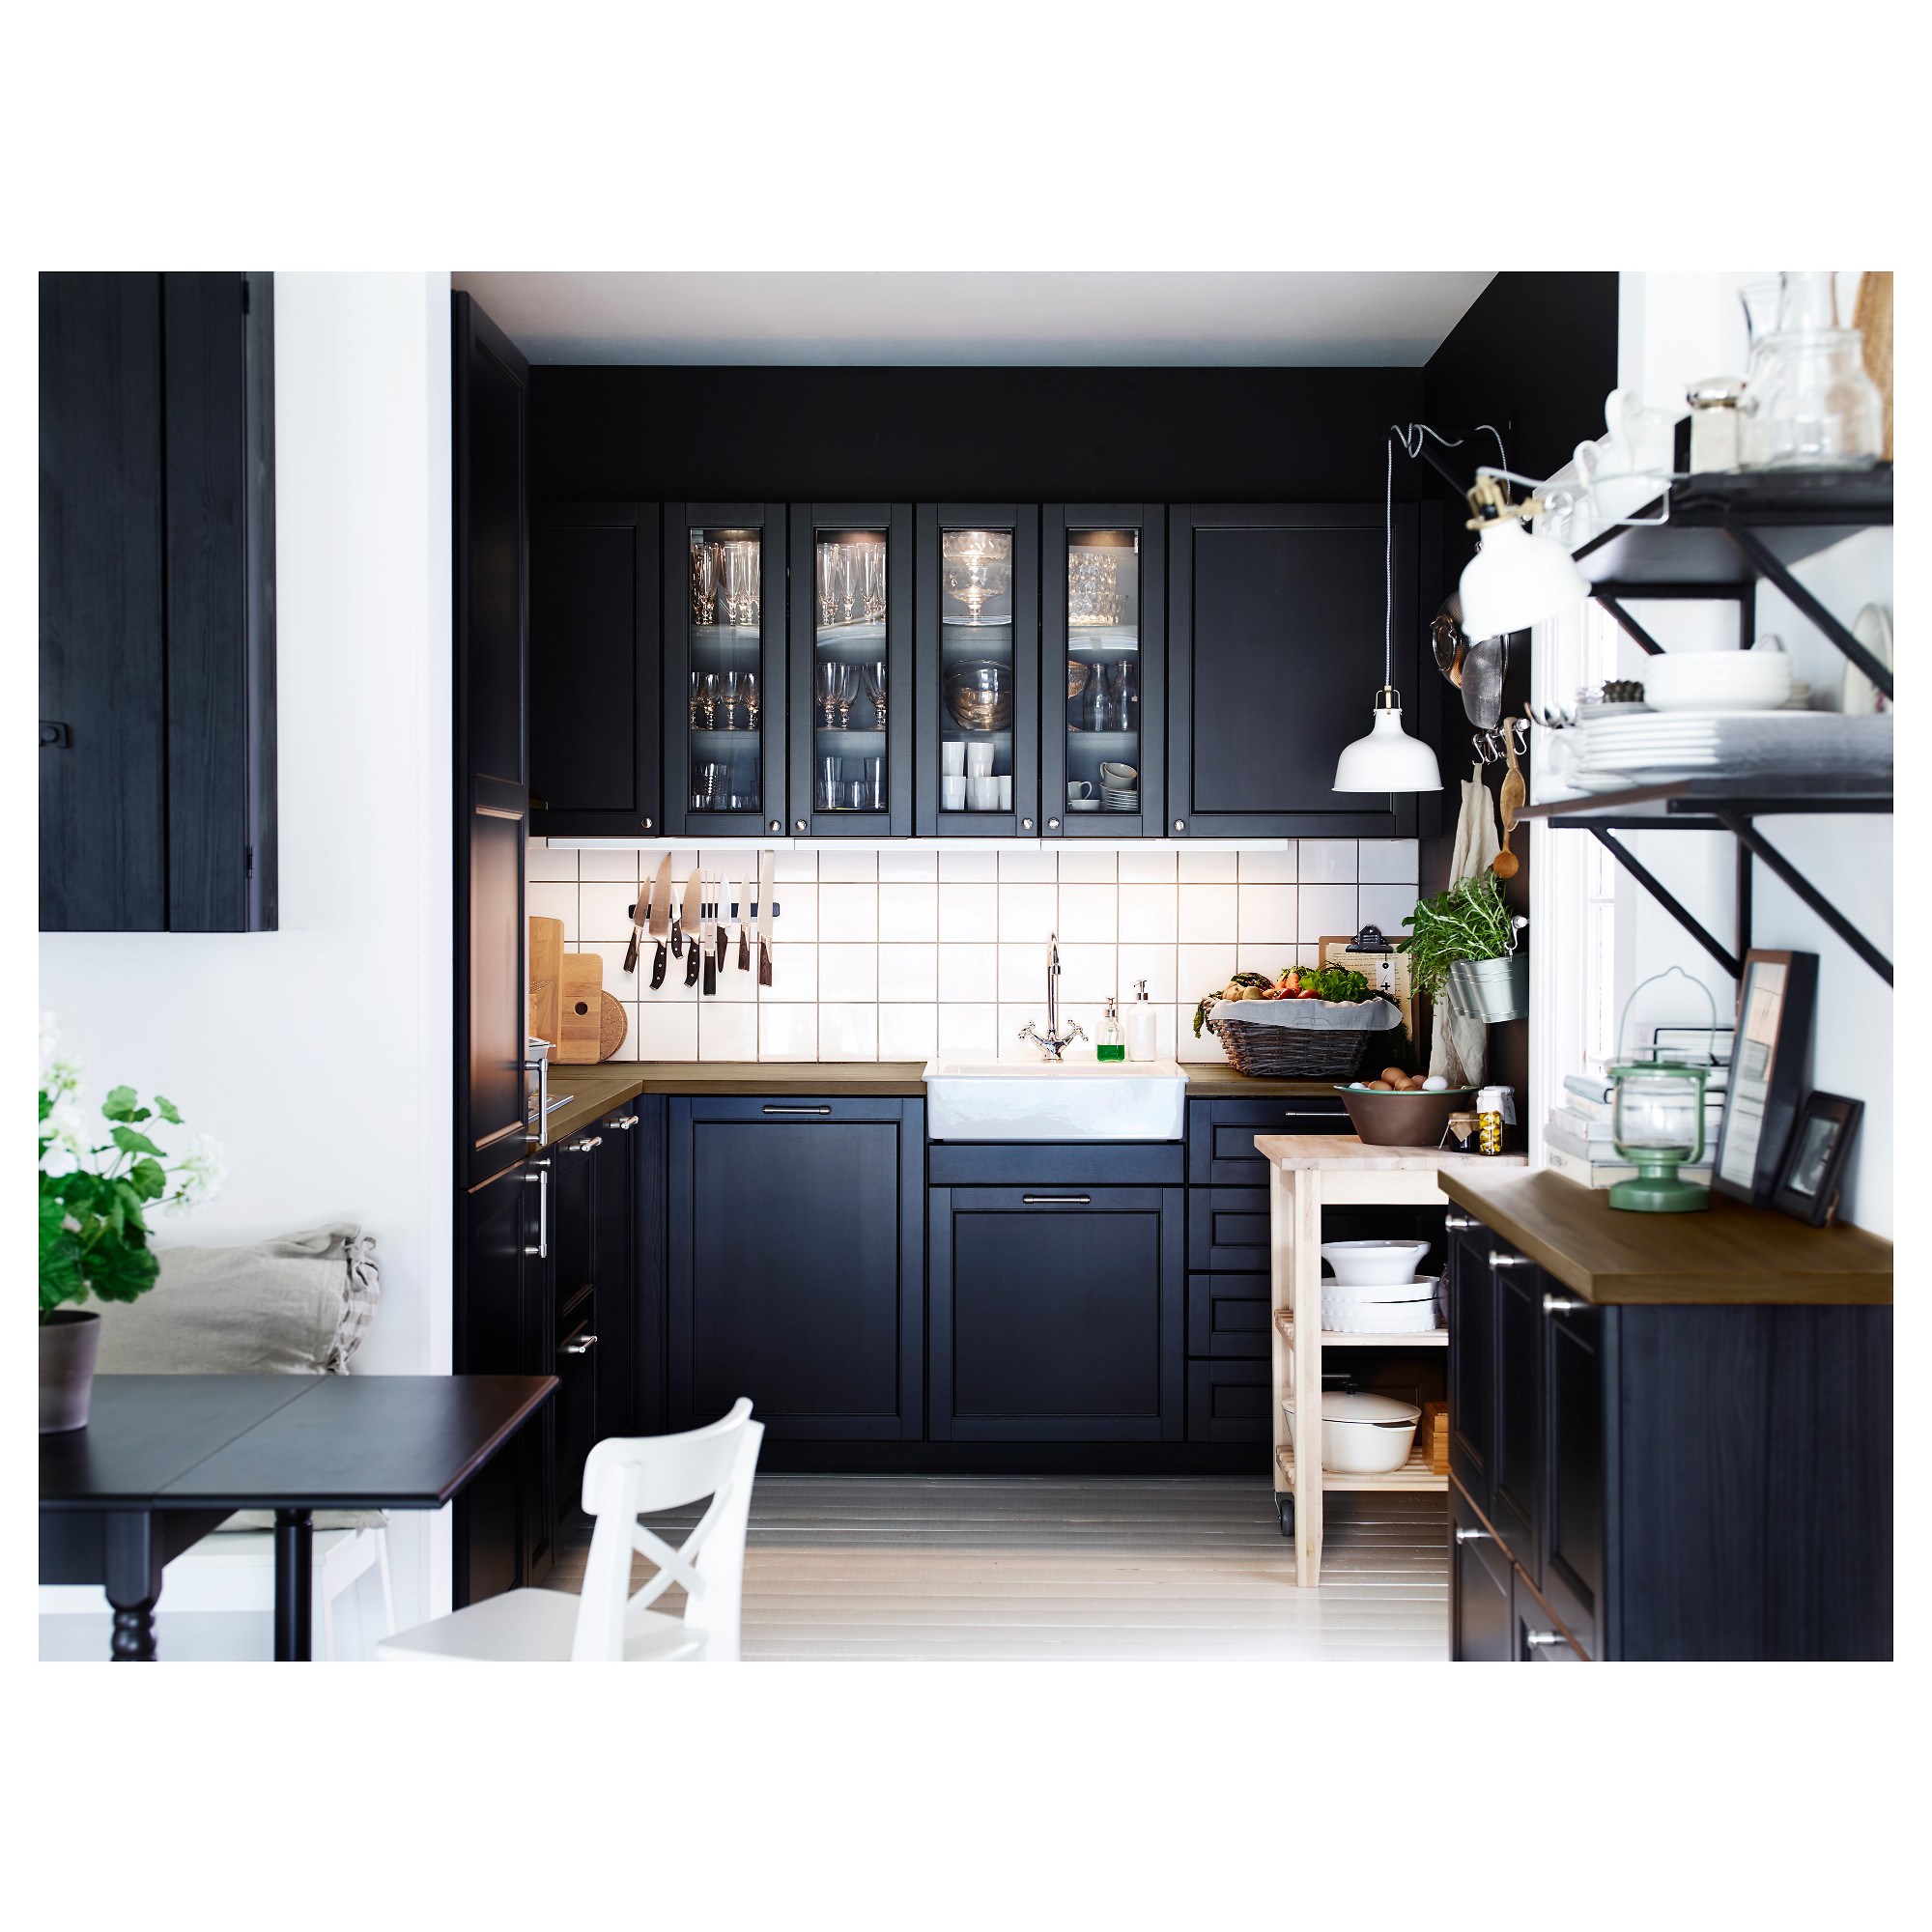 avis cuisine ikea laxarby noir avec des id es int ressantes pour la conception de. Black Bedroom Furniture Sets. Home Design Ideas